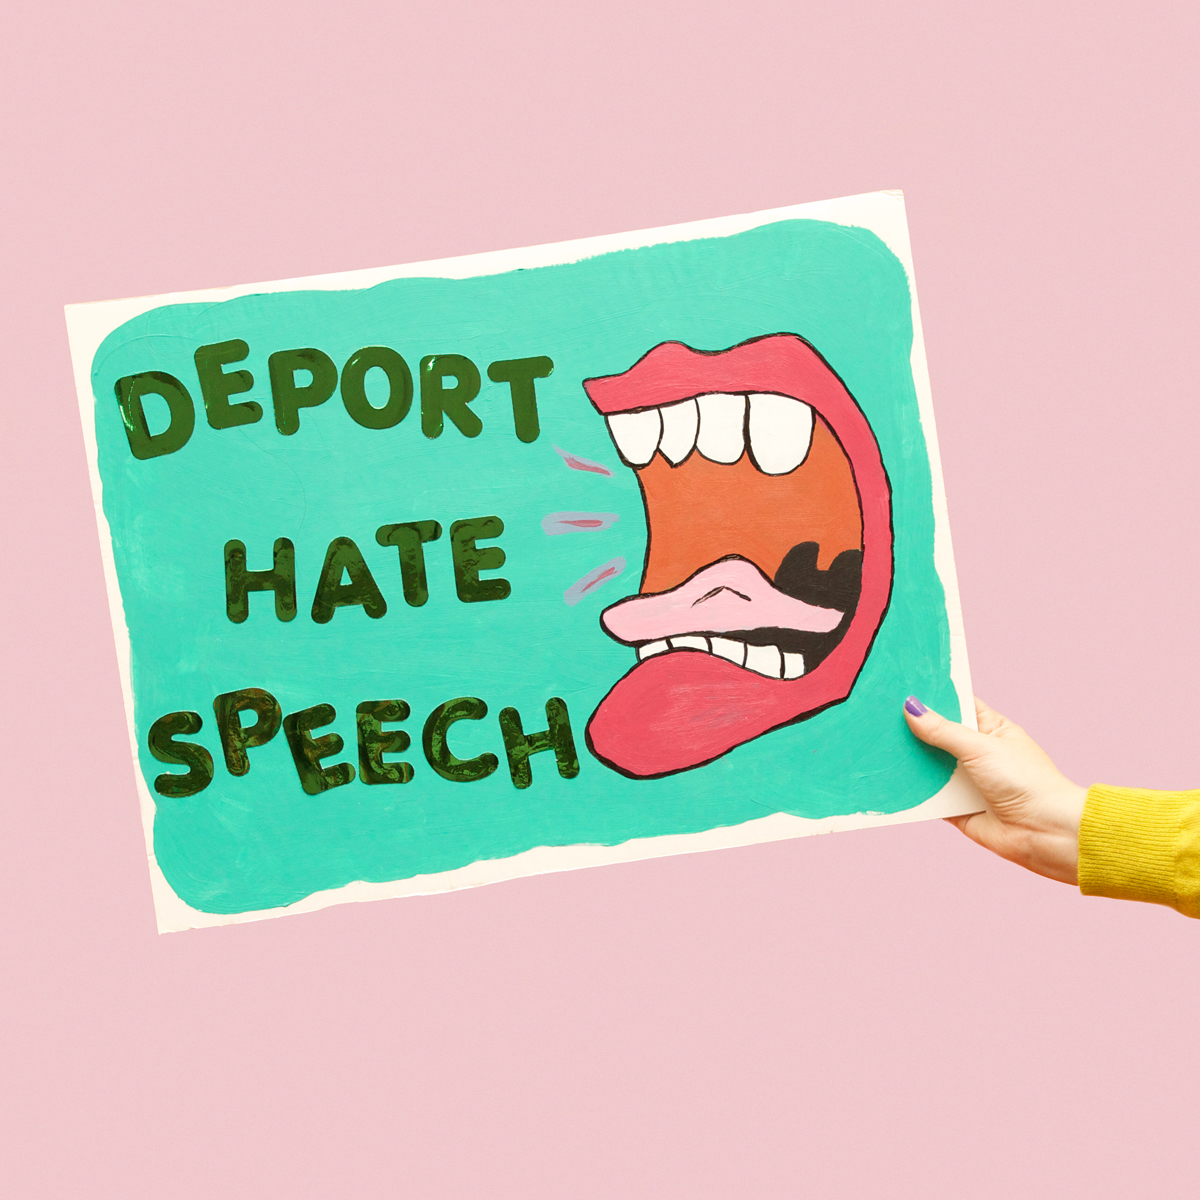 45 Protest Signs_Brandon and Olivia Locher_27_Deport hate speech